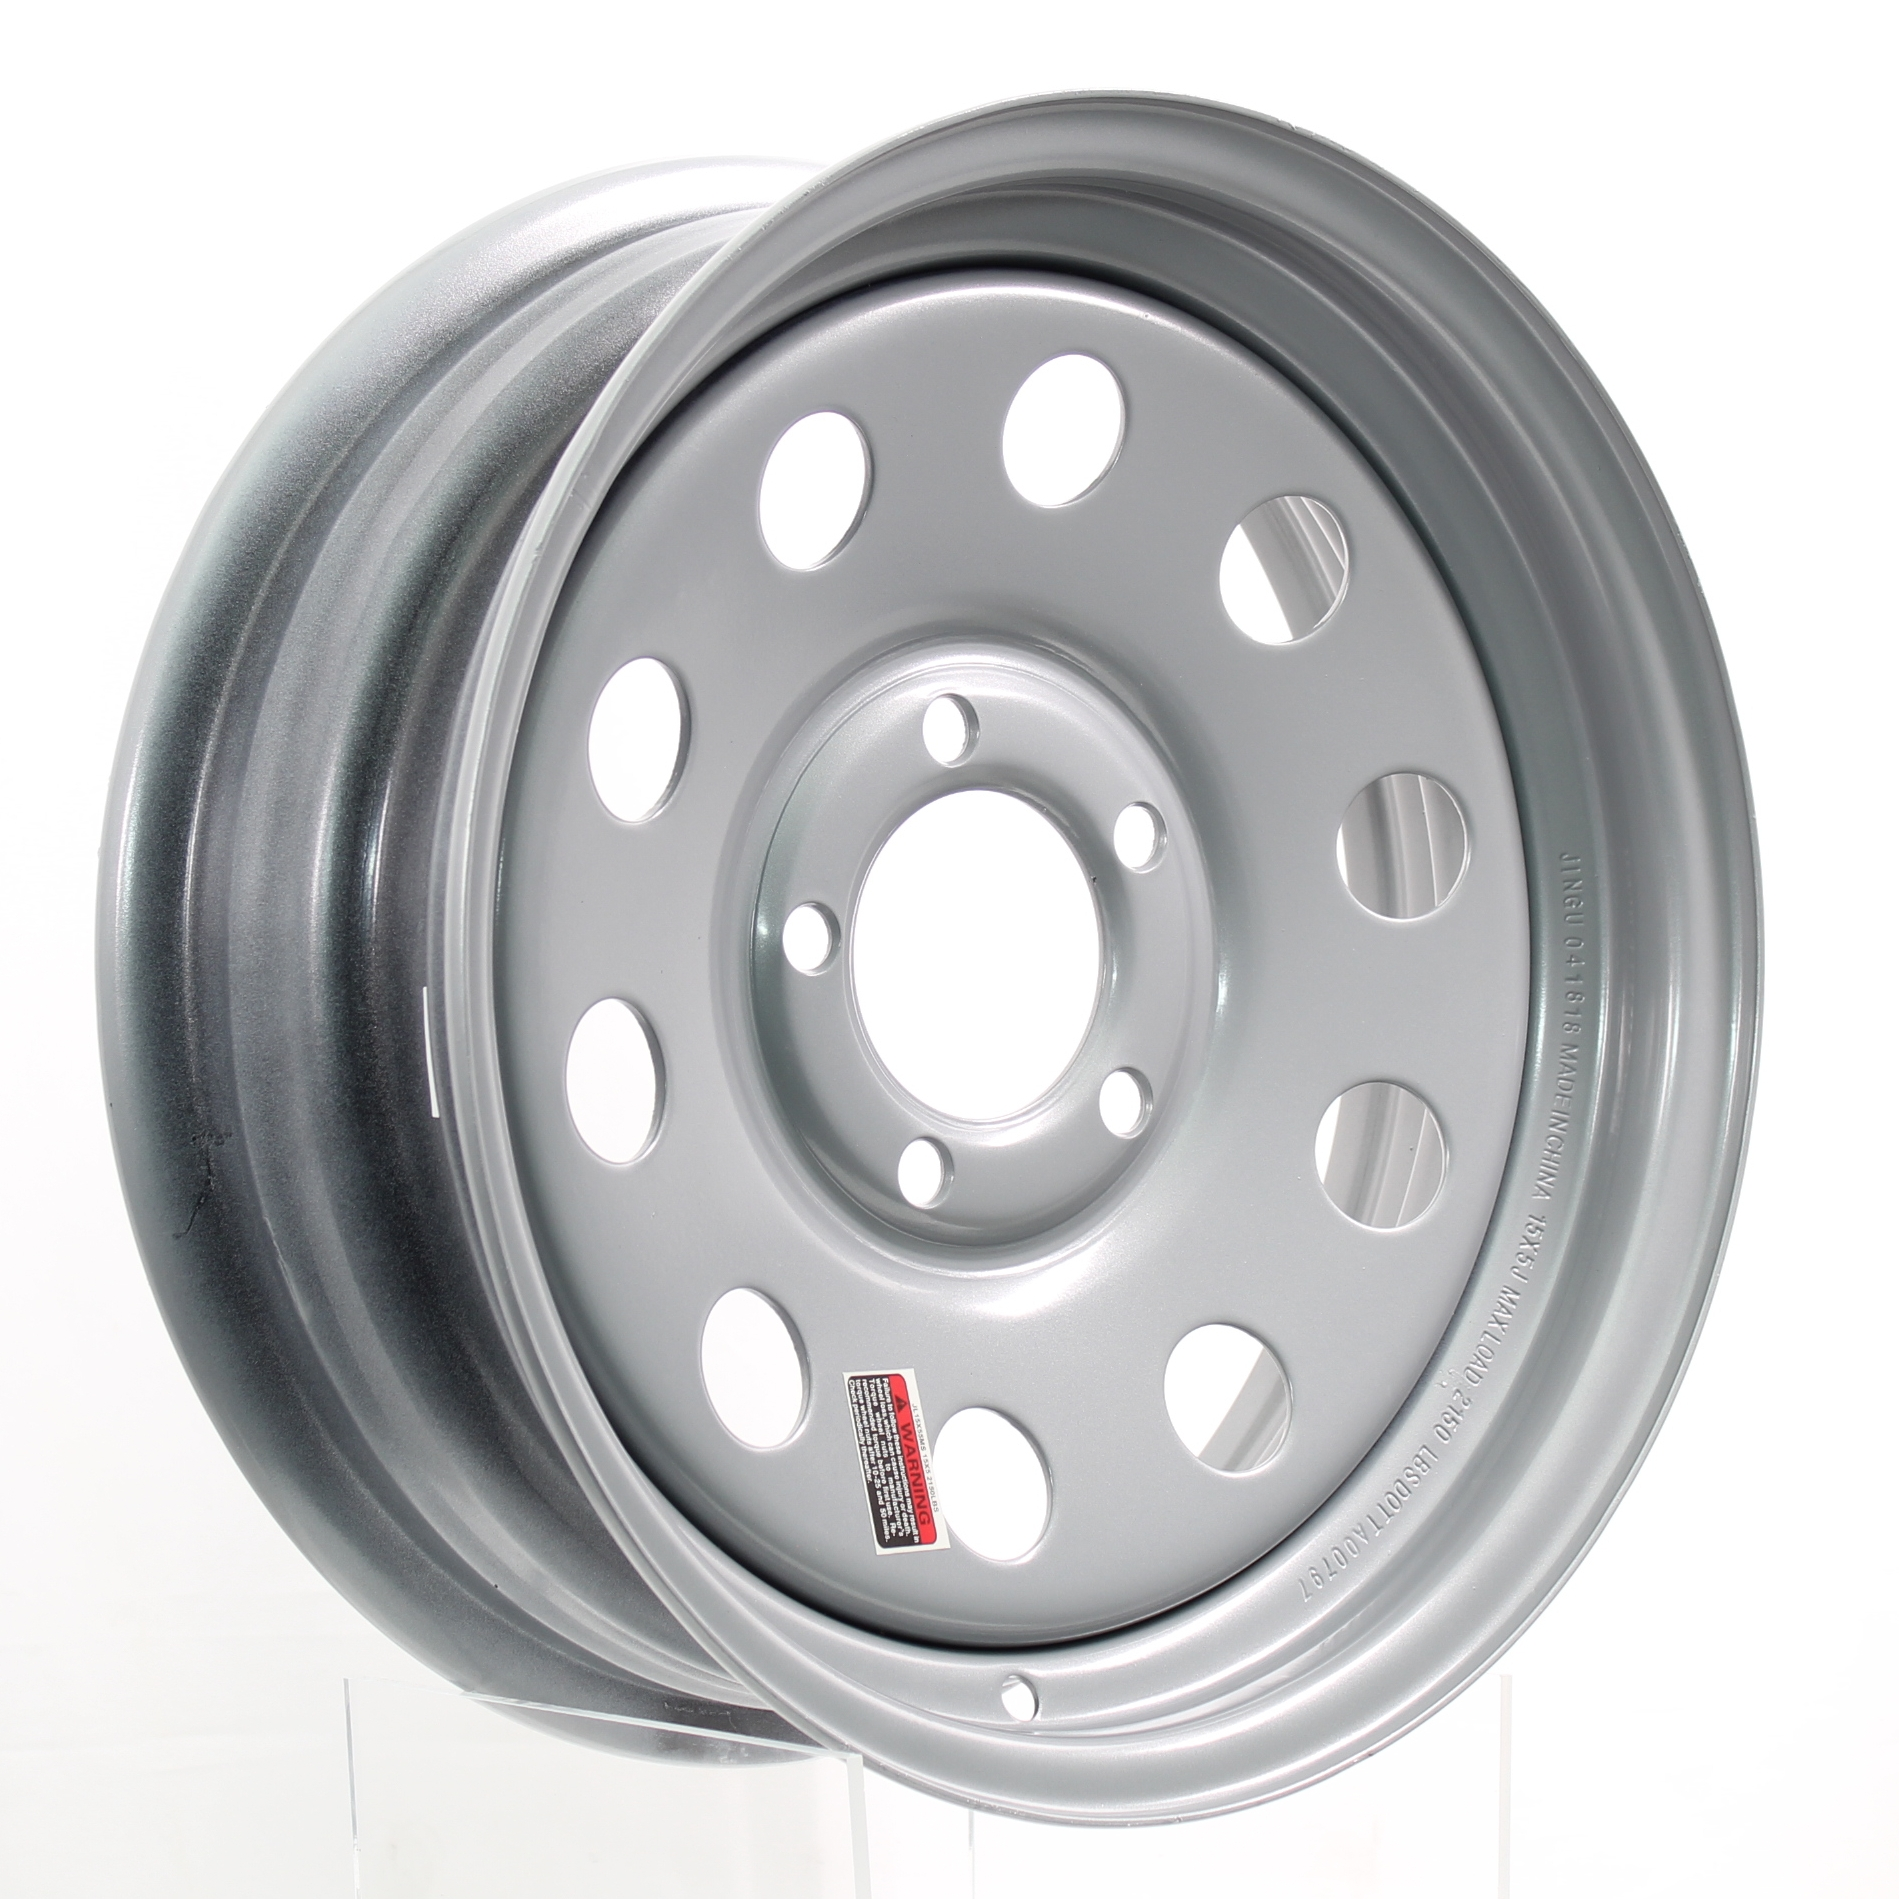 15x6 5-4.5 Silver Mod Steel Trailer Wheel  Image